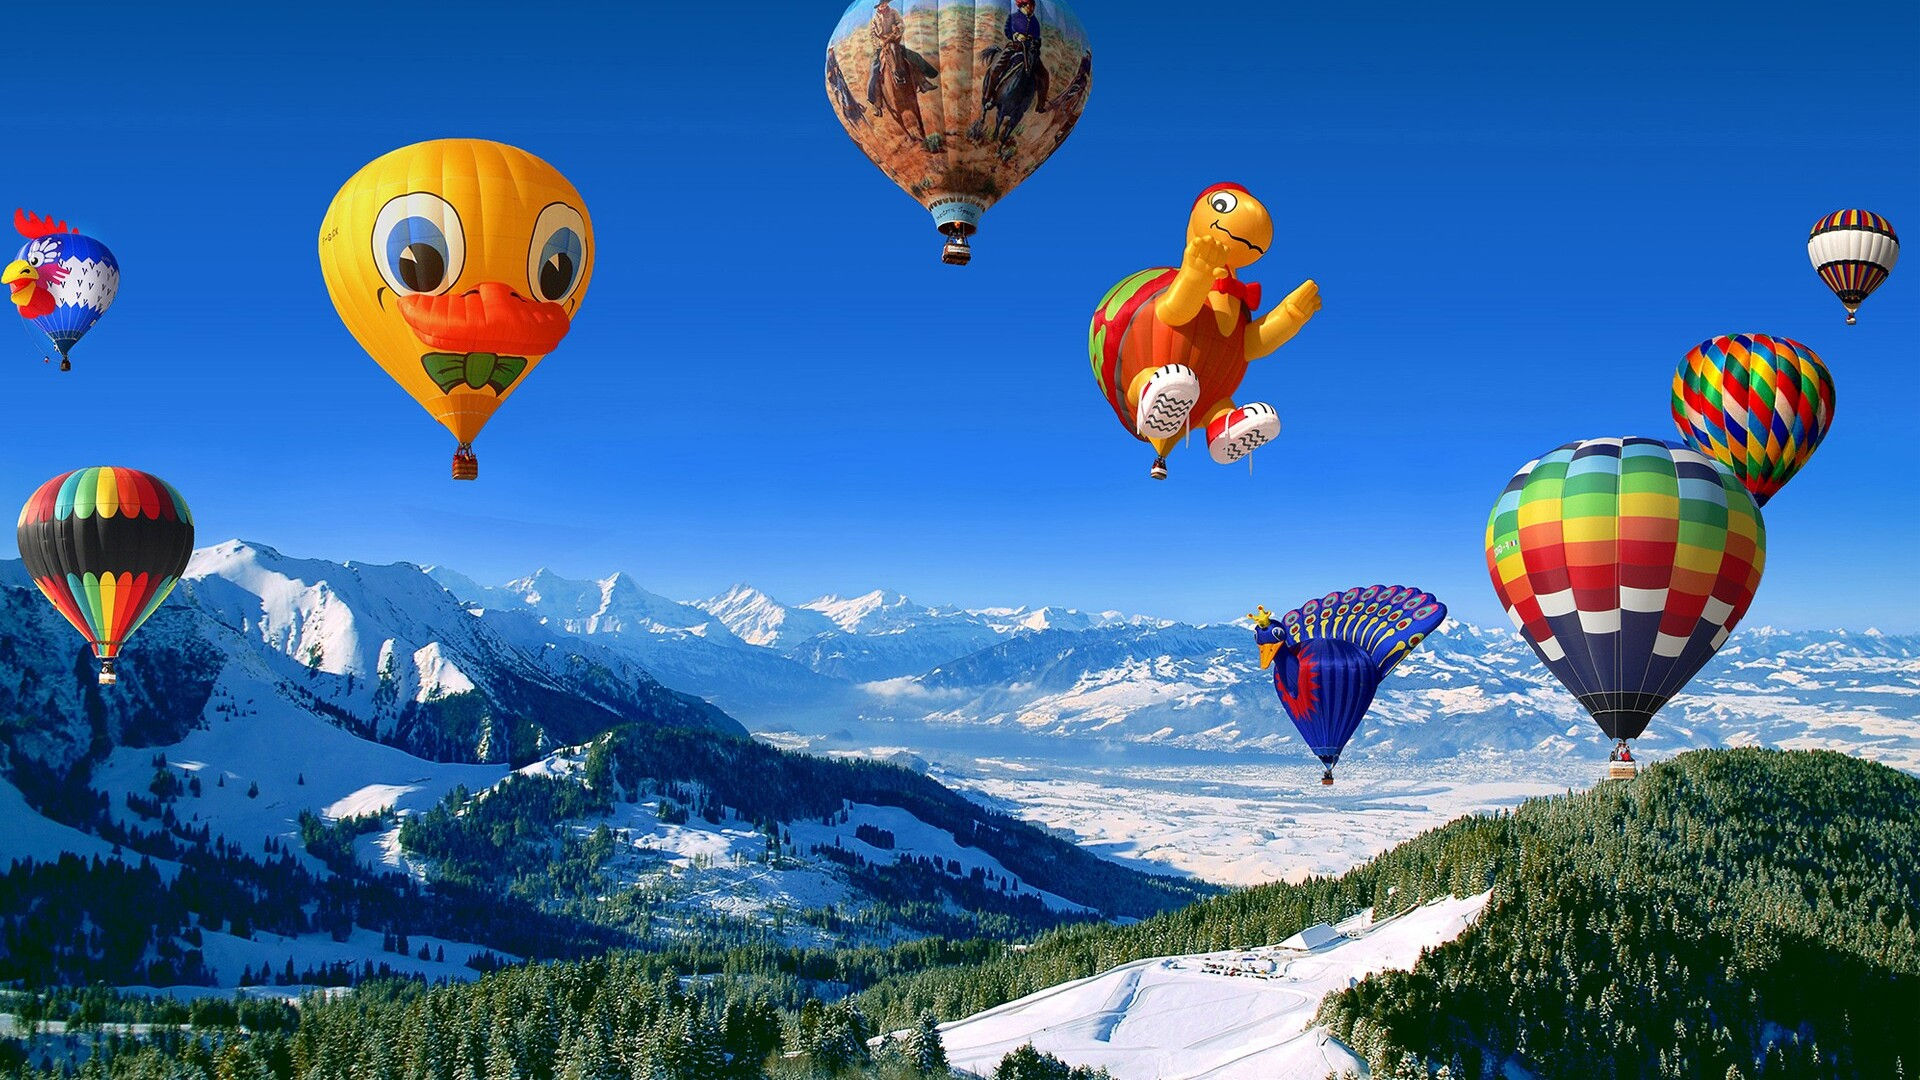 1920x1080 Hot Air Balloon Laptop Full Hd 1080p Hd 4k Wallpapers